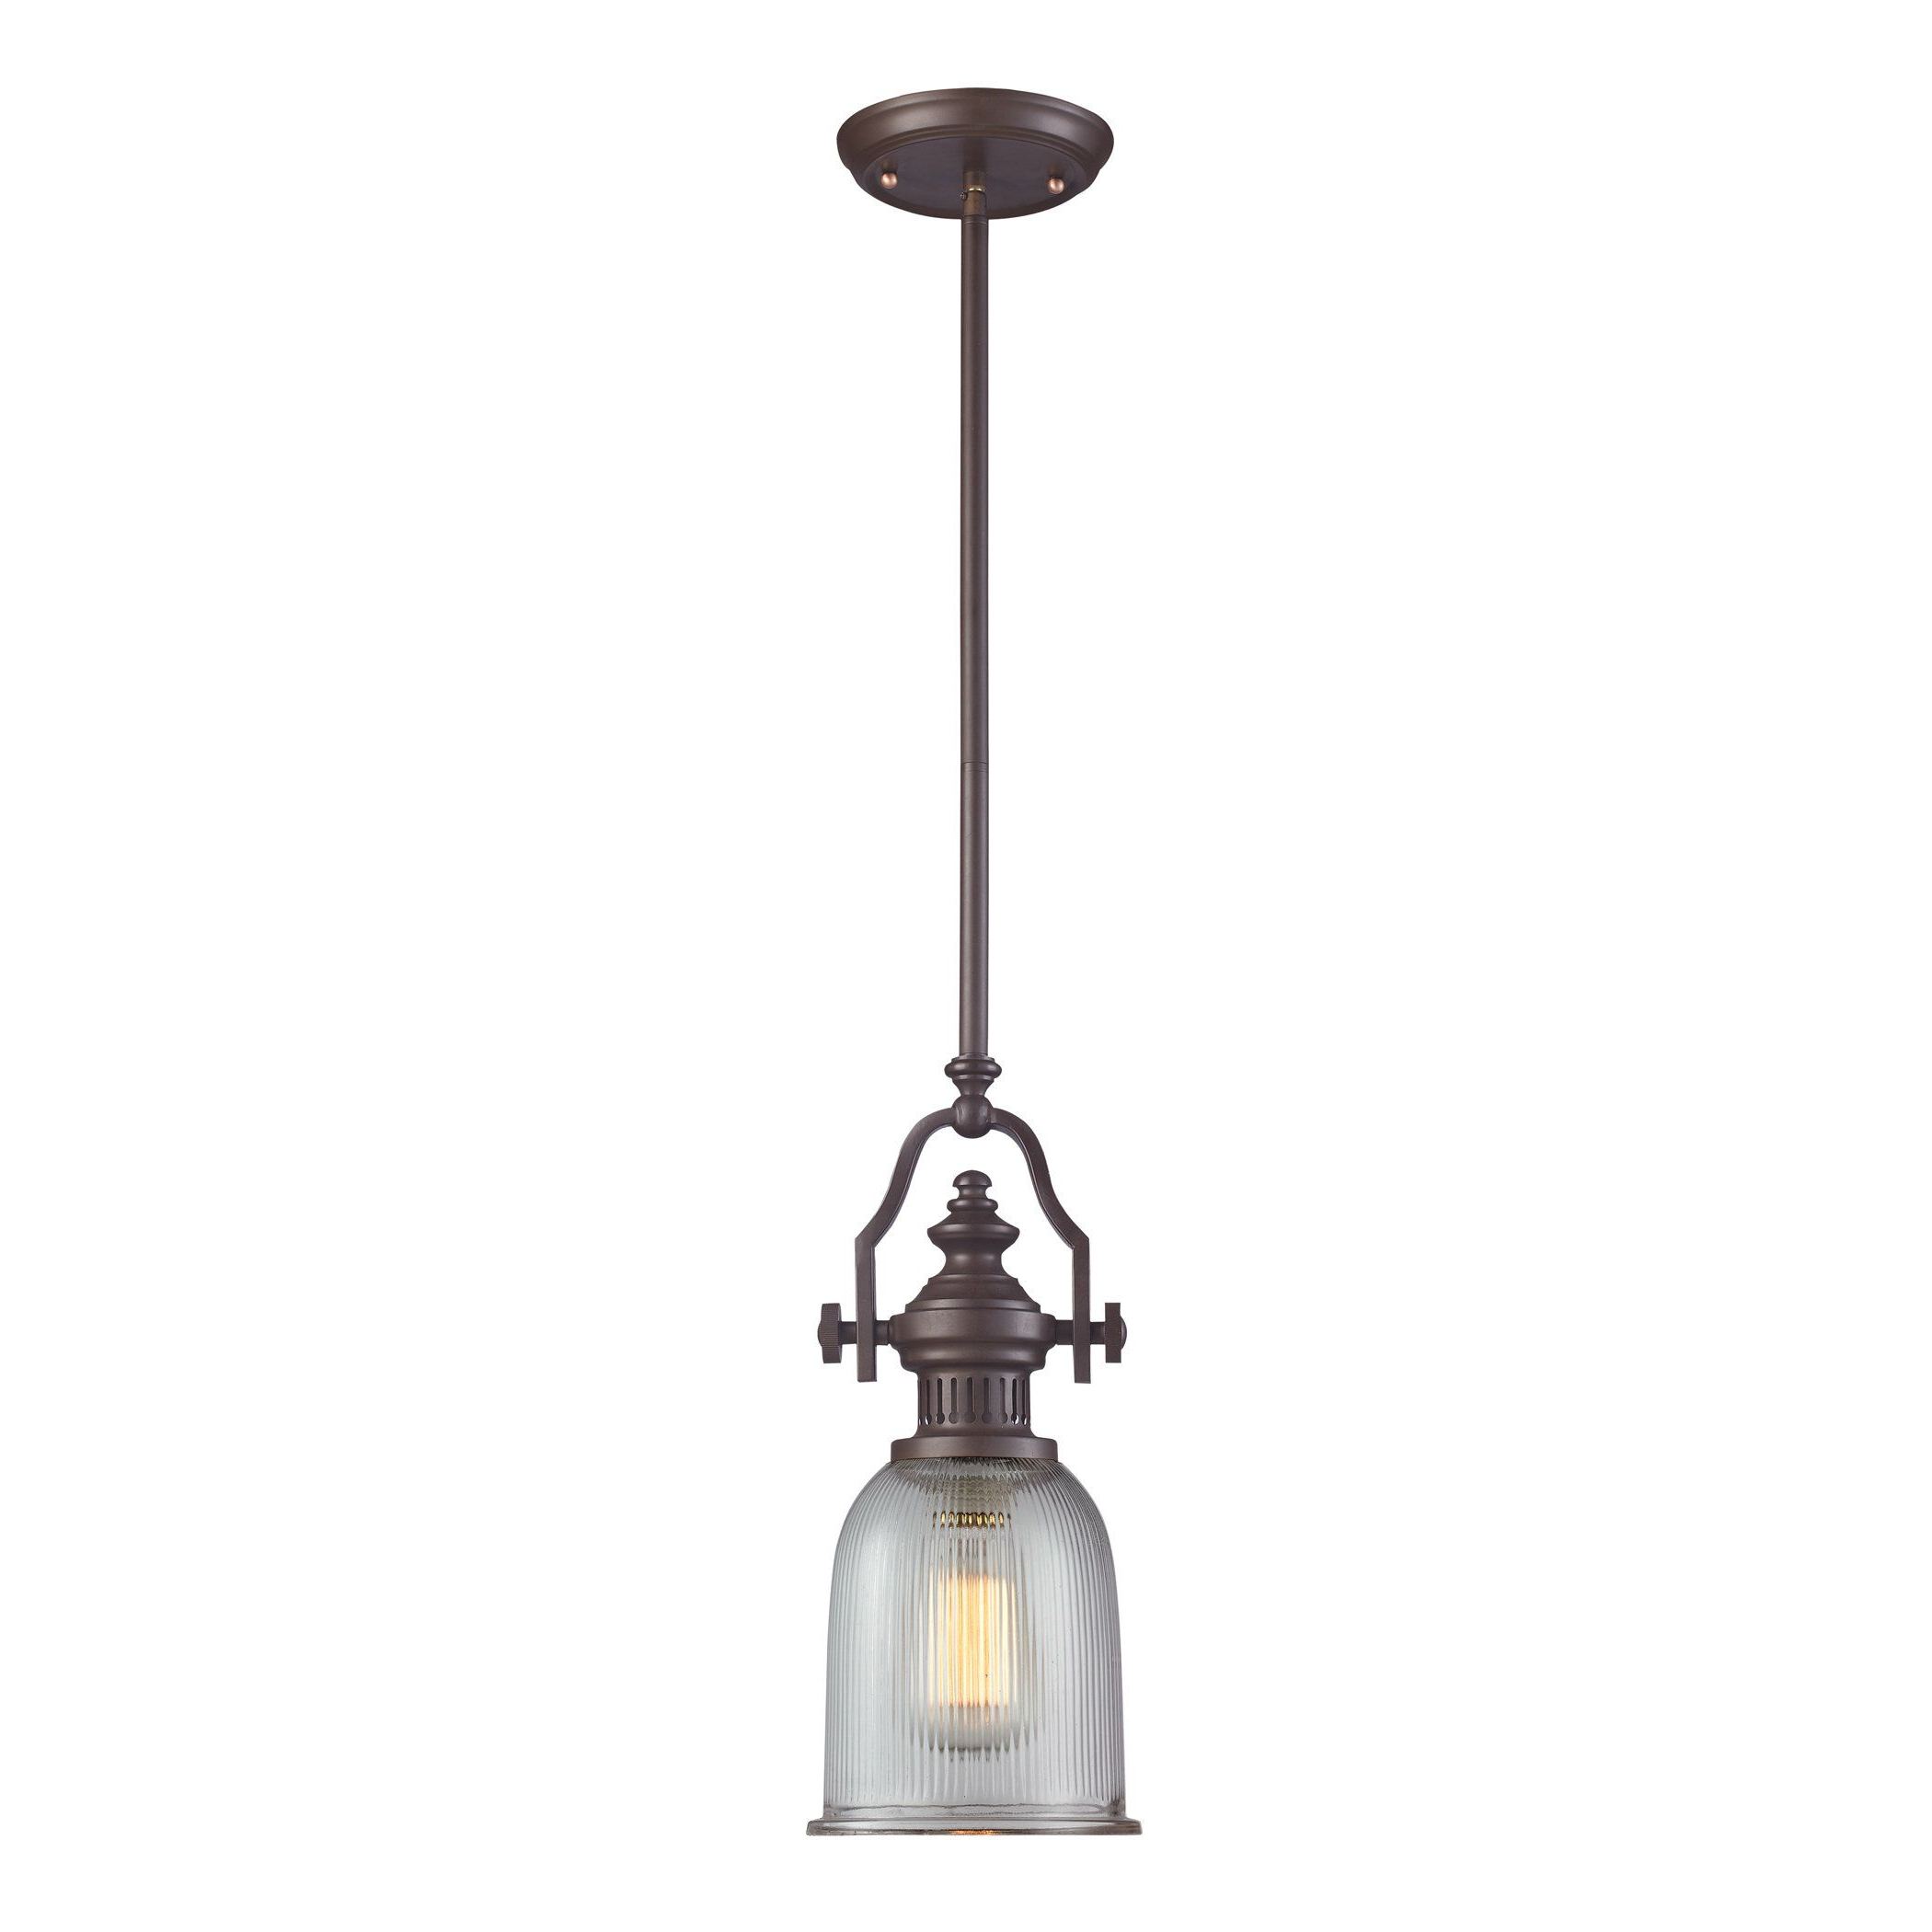 Newest Erico 1 Light Single Bell Pendants Throughout Erico 1 Light Cone Pendant (View 9 of 20)